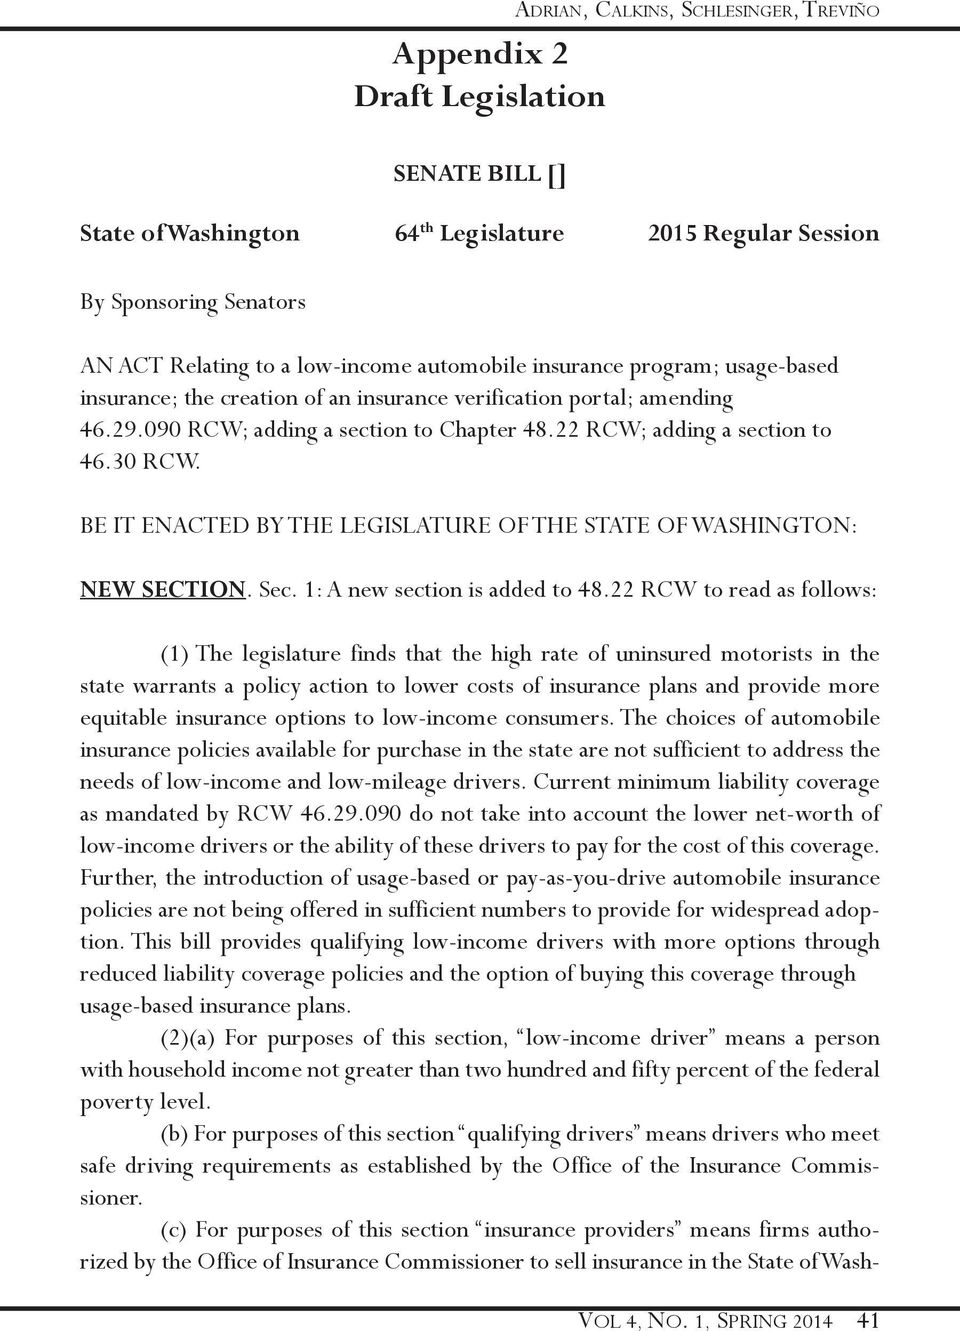 BE IT ENACTED BY THE LEGISLATURE OF THE STATE OF WASHINGTON: NEW SECTION. Sec. 1: A new section is added to 48.